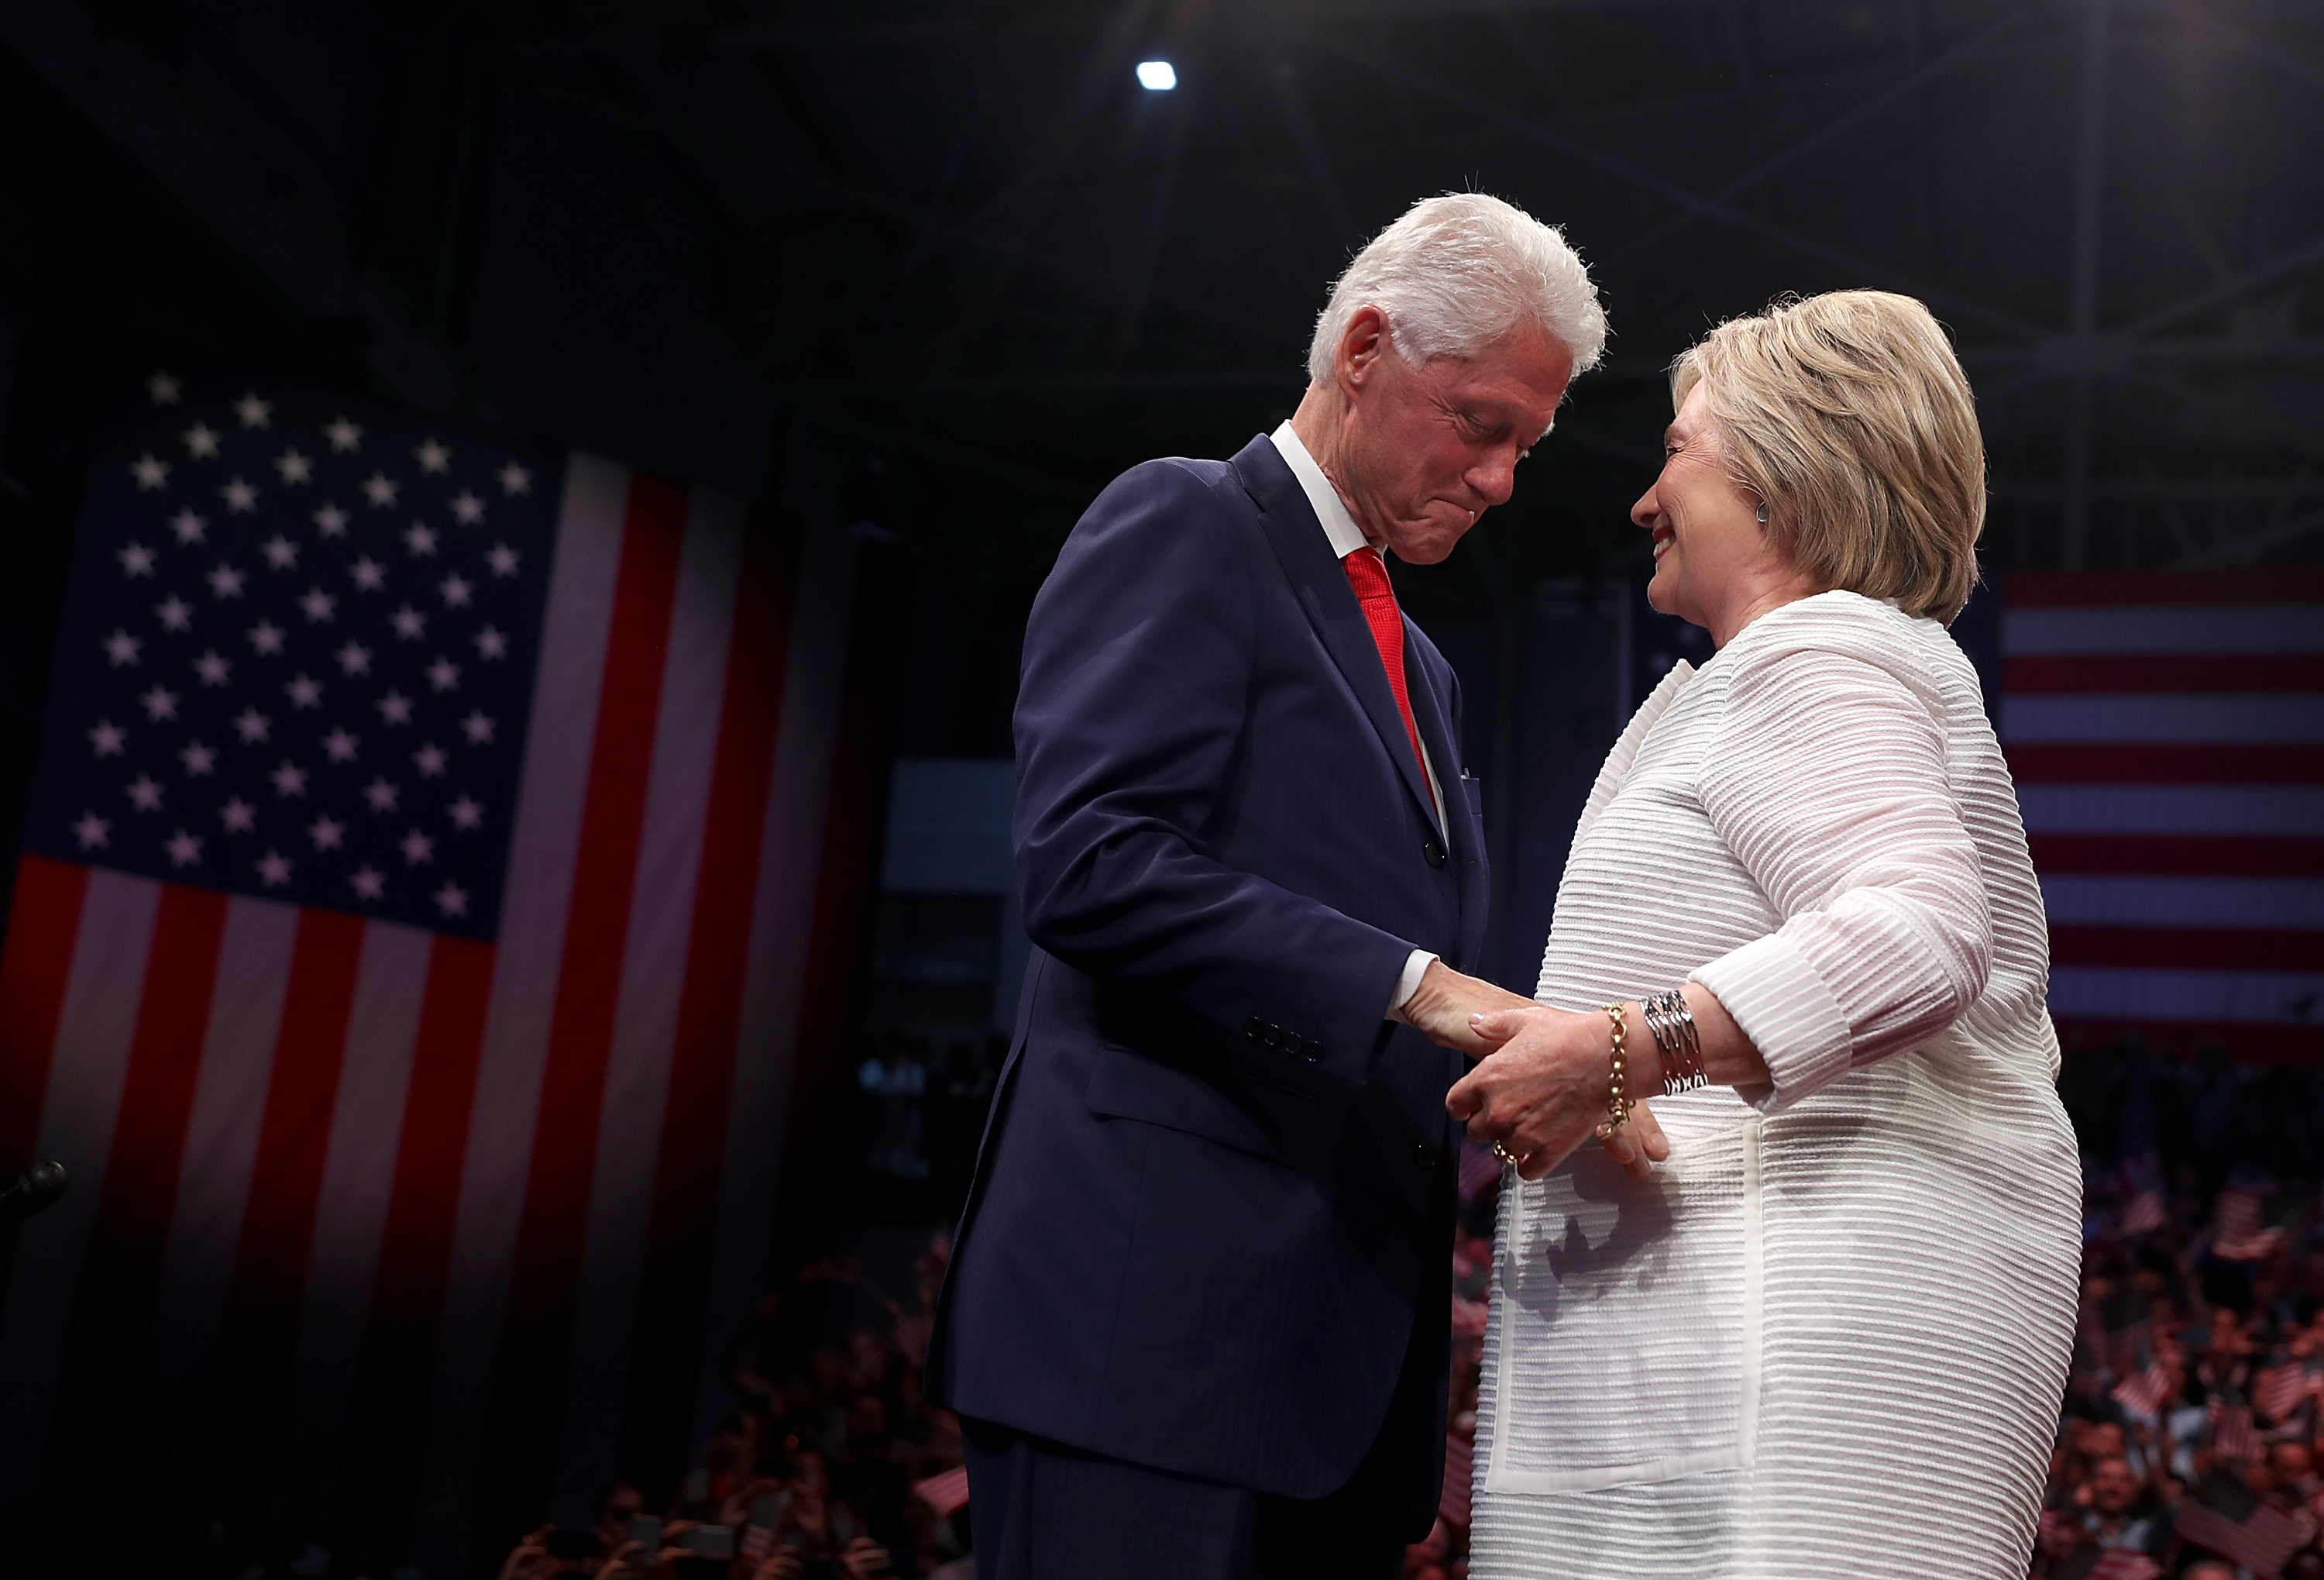 Democratic presidential candidate former Secretary of State Hillary Clinton and her husband former U.S. president Bill Clinton embrace during a primary night event on June 7, 2016 in Brooklyn, New York after Hillary Clinton surpassed the number of delegates needed to become the democratic nominee.